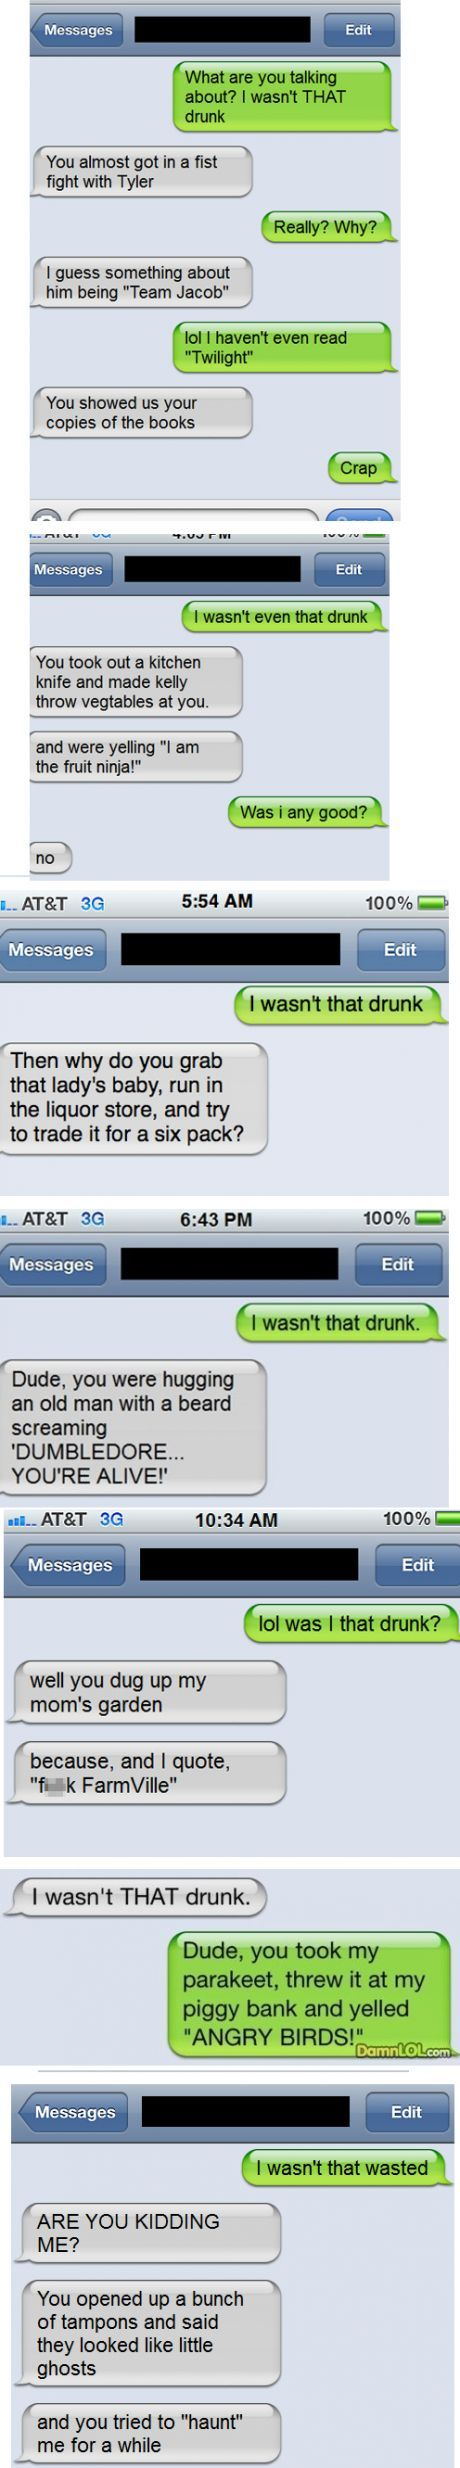 13 best I wasnt that drunk texts images on Pinterest